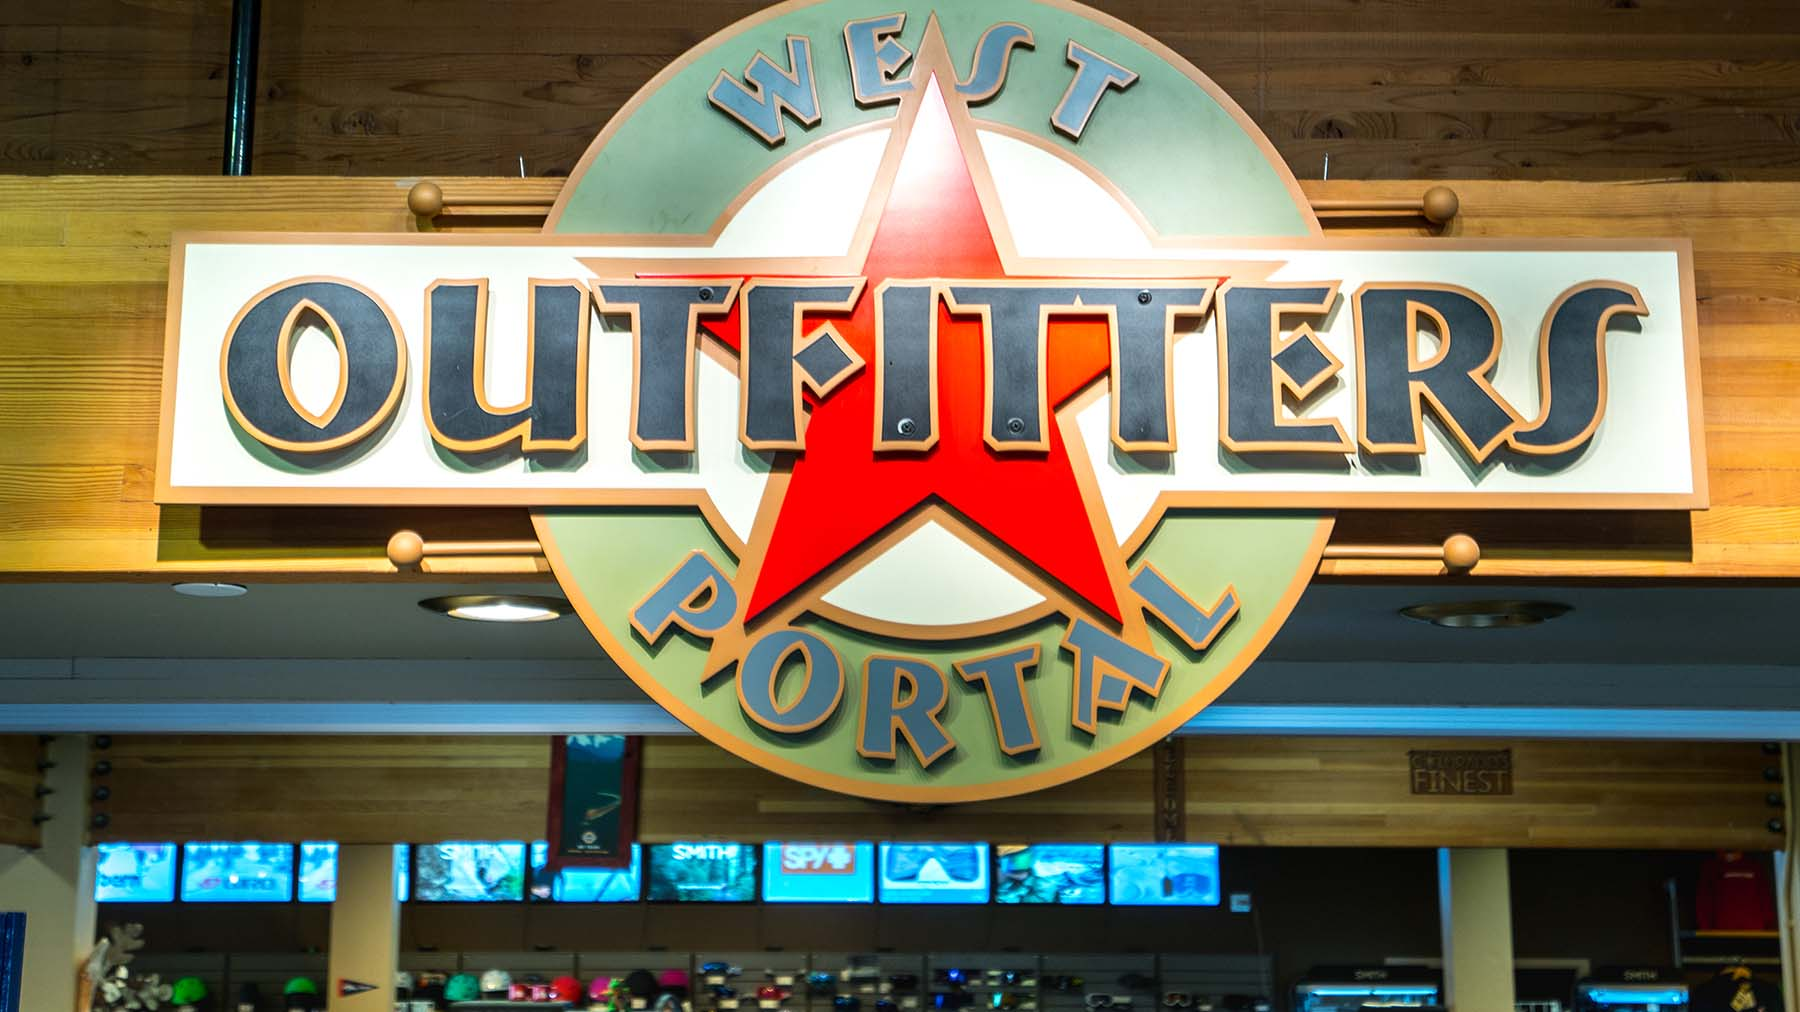 West Portal Outfitters